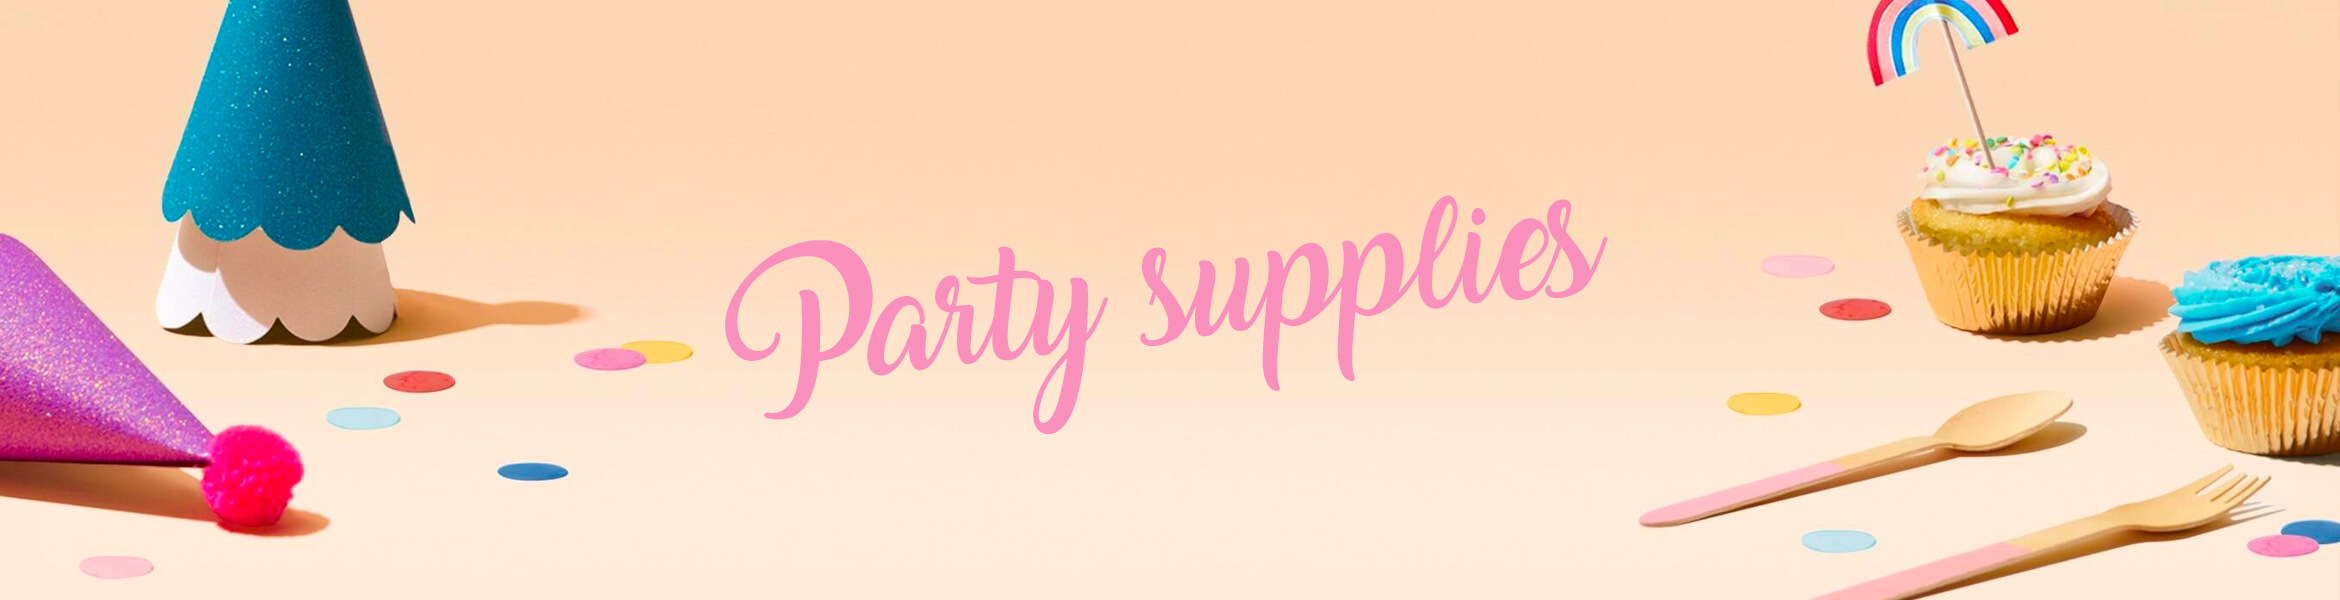 Party supplies for any occasions